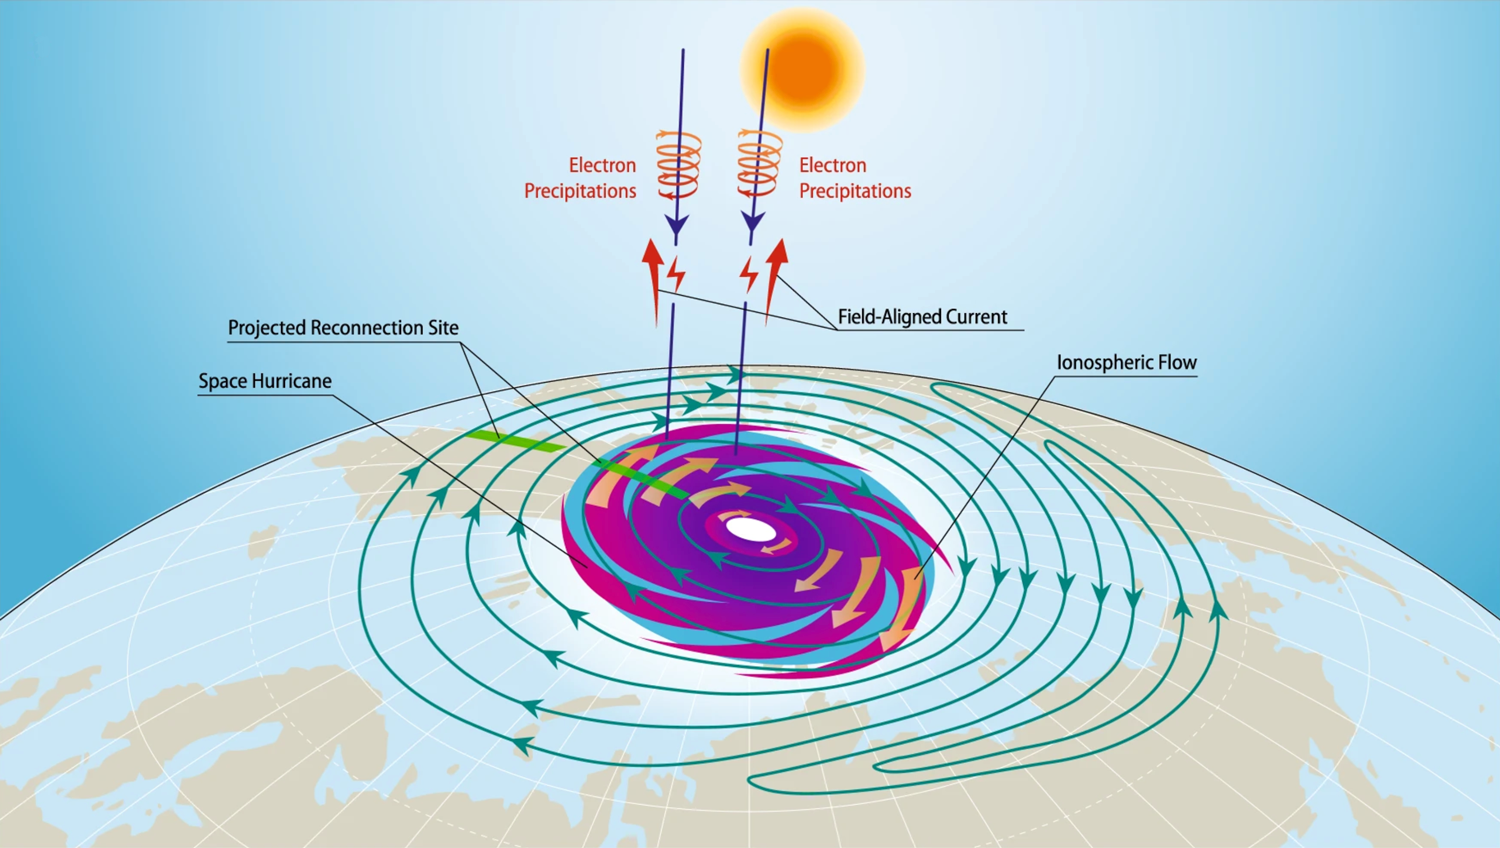 Schematic of a space hurricane in the northern polar ionosphere